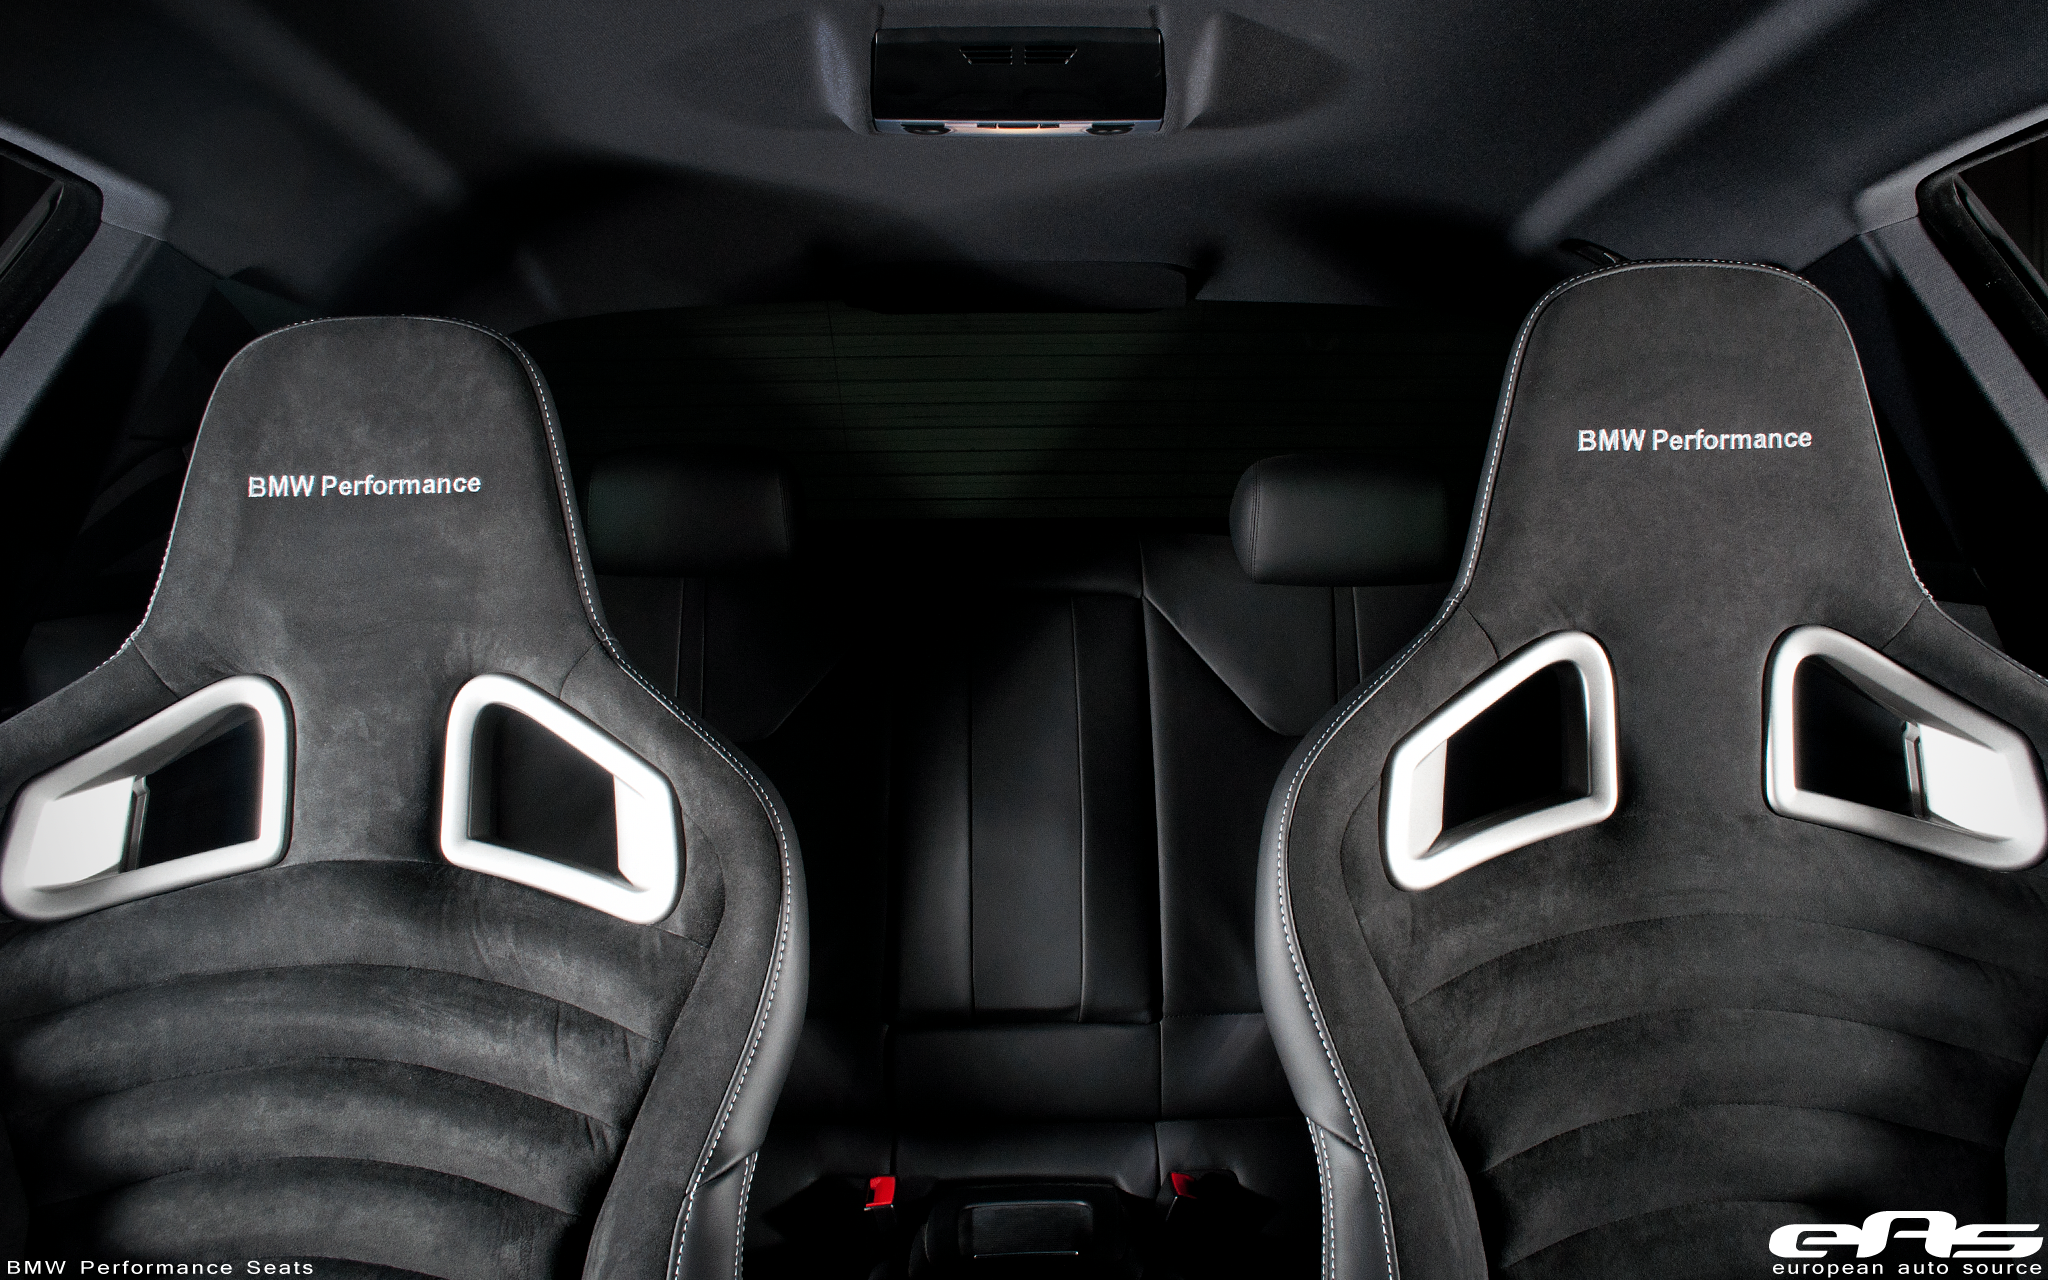 Bmw Performance Seats Installed In A Laguna Seca Blue M3